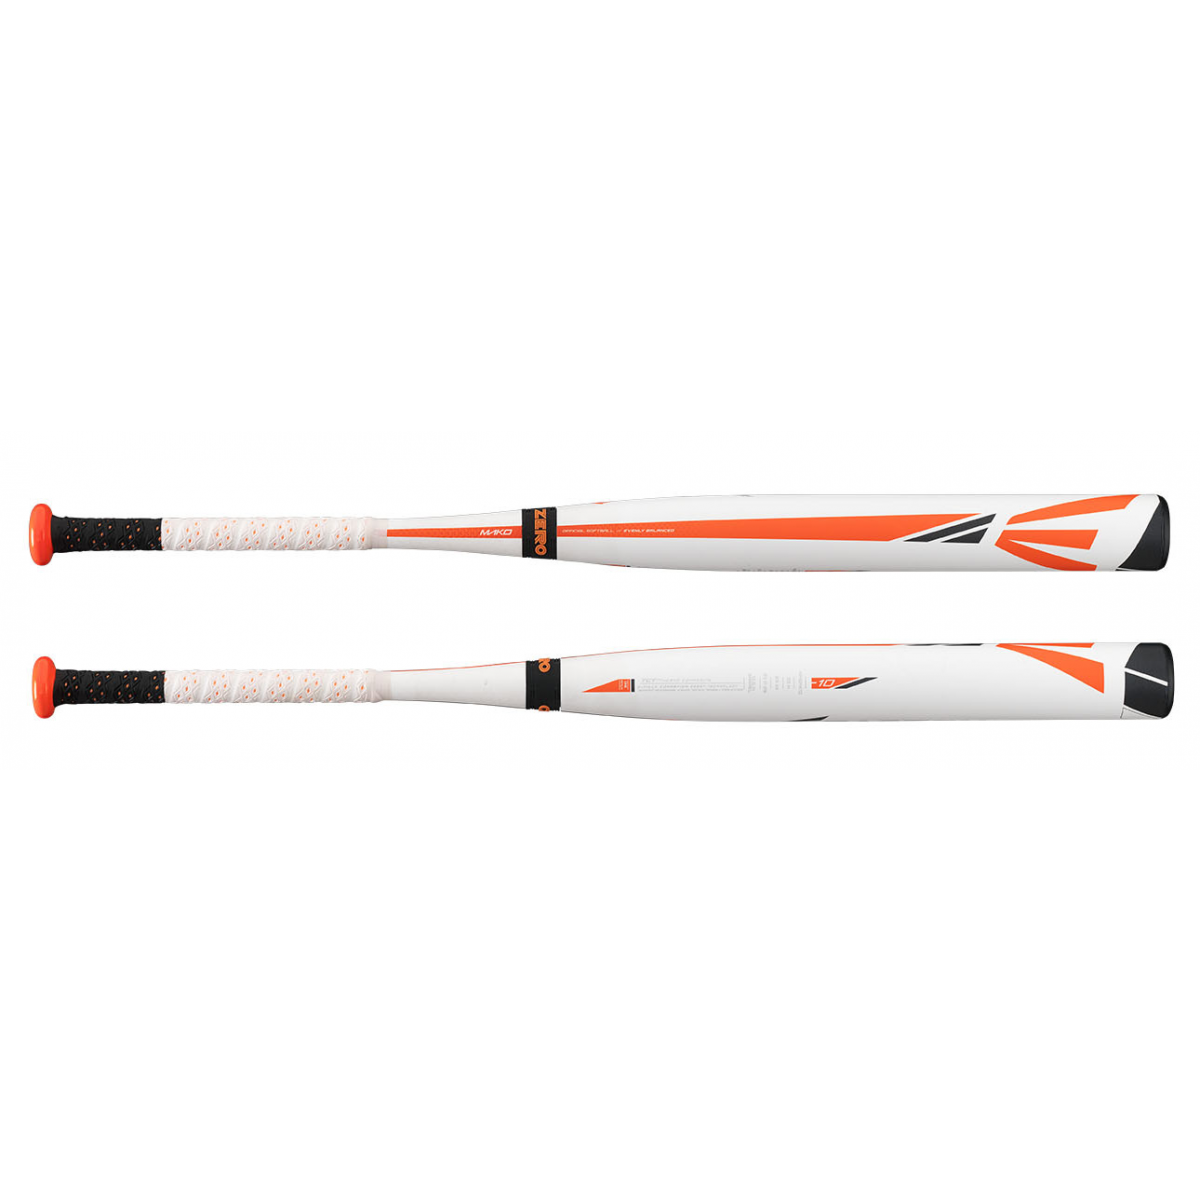 easton-2015-fp15mk10-mako-cxn-zero-10-fastpitch-softball-bat-31-inch-21-ounce FP15MK10-31-inch-21-oz Easton  Easton Mako Fast Pitch Softball Bat. CXN zero 2-piece composite speed